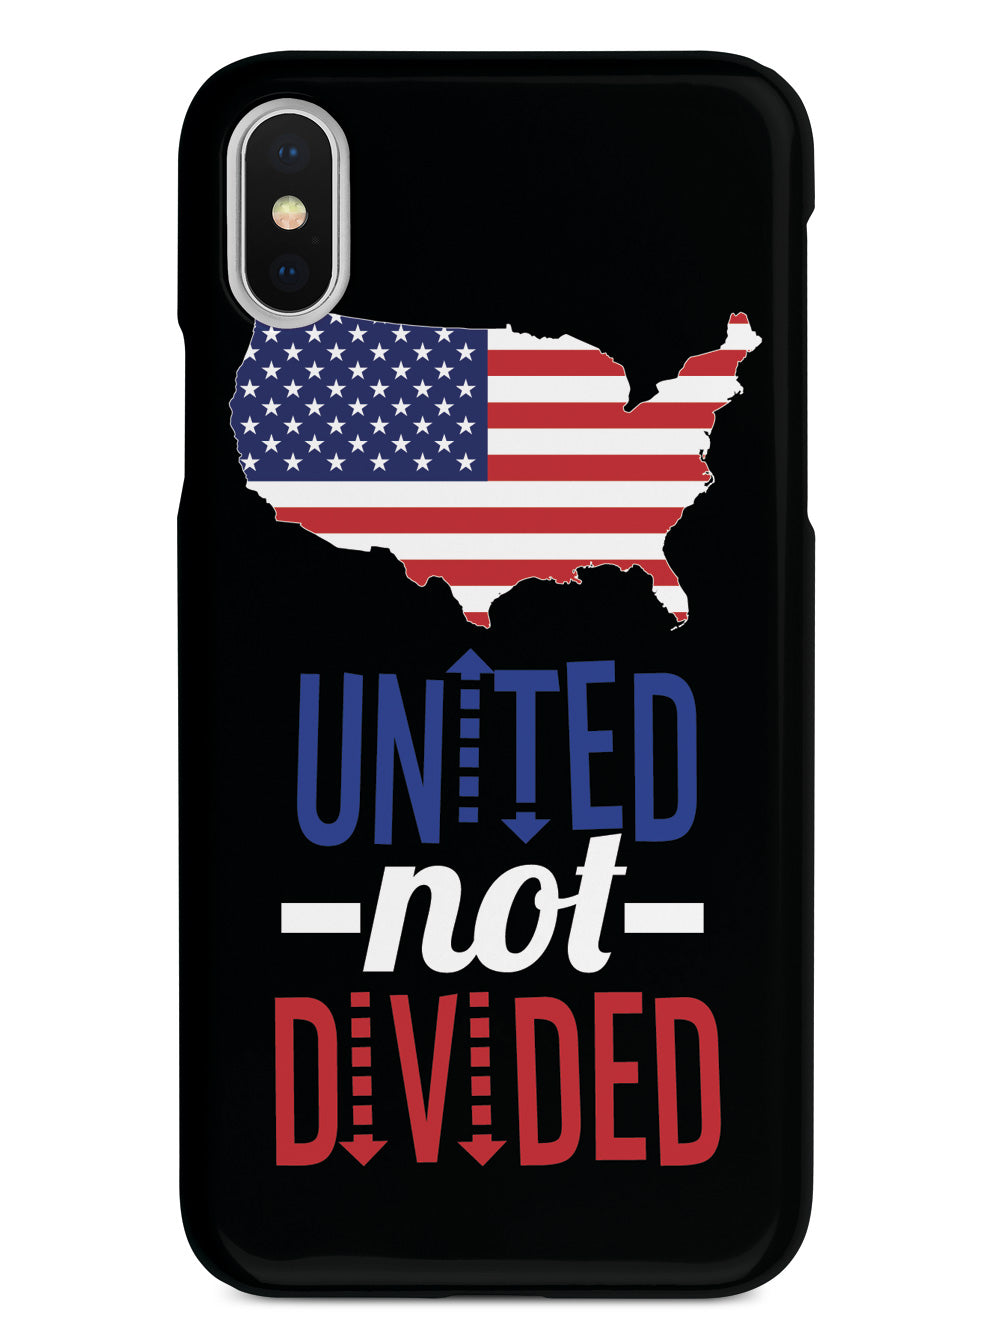 USA - United NOT Divided - Black Case